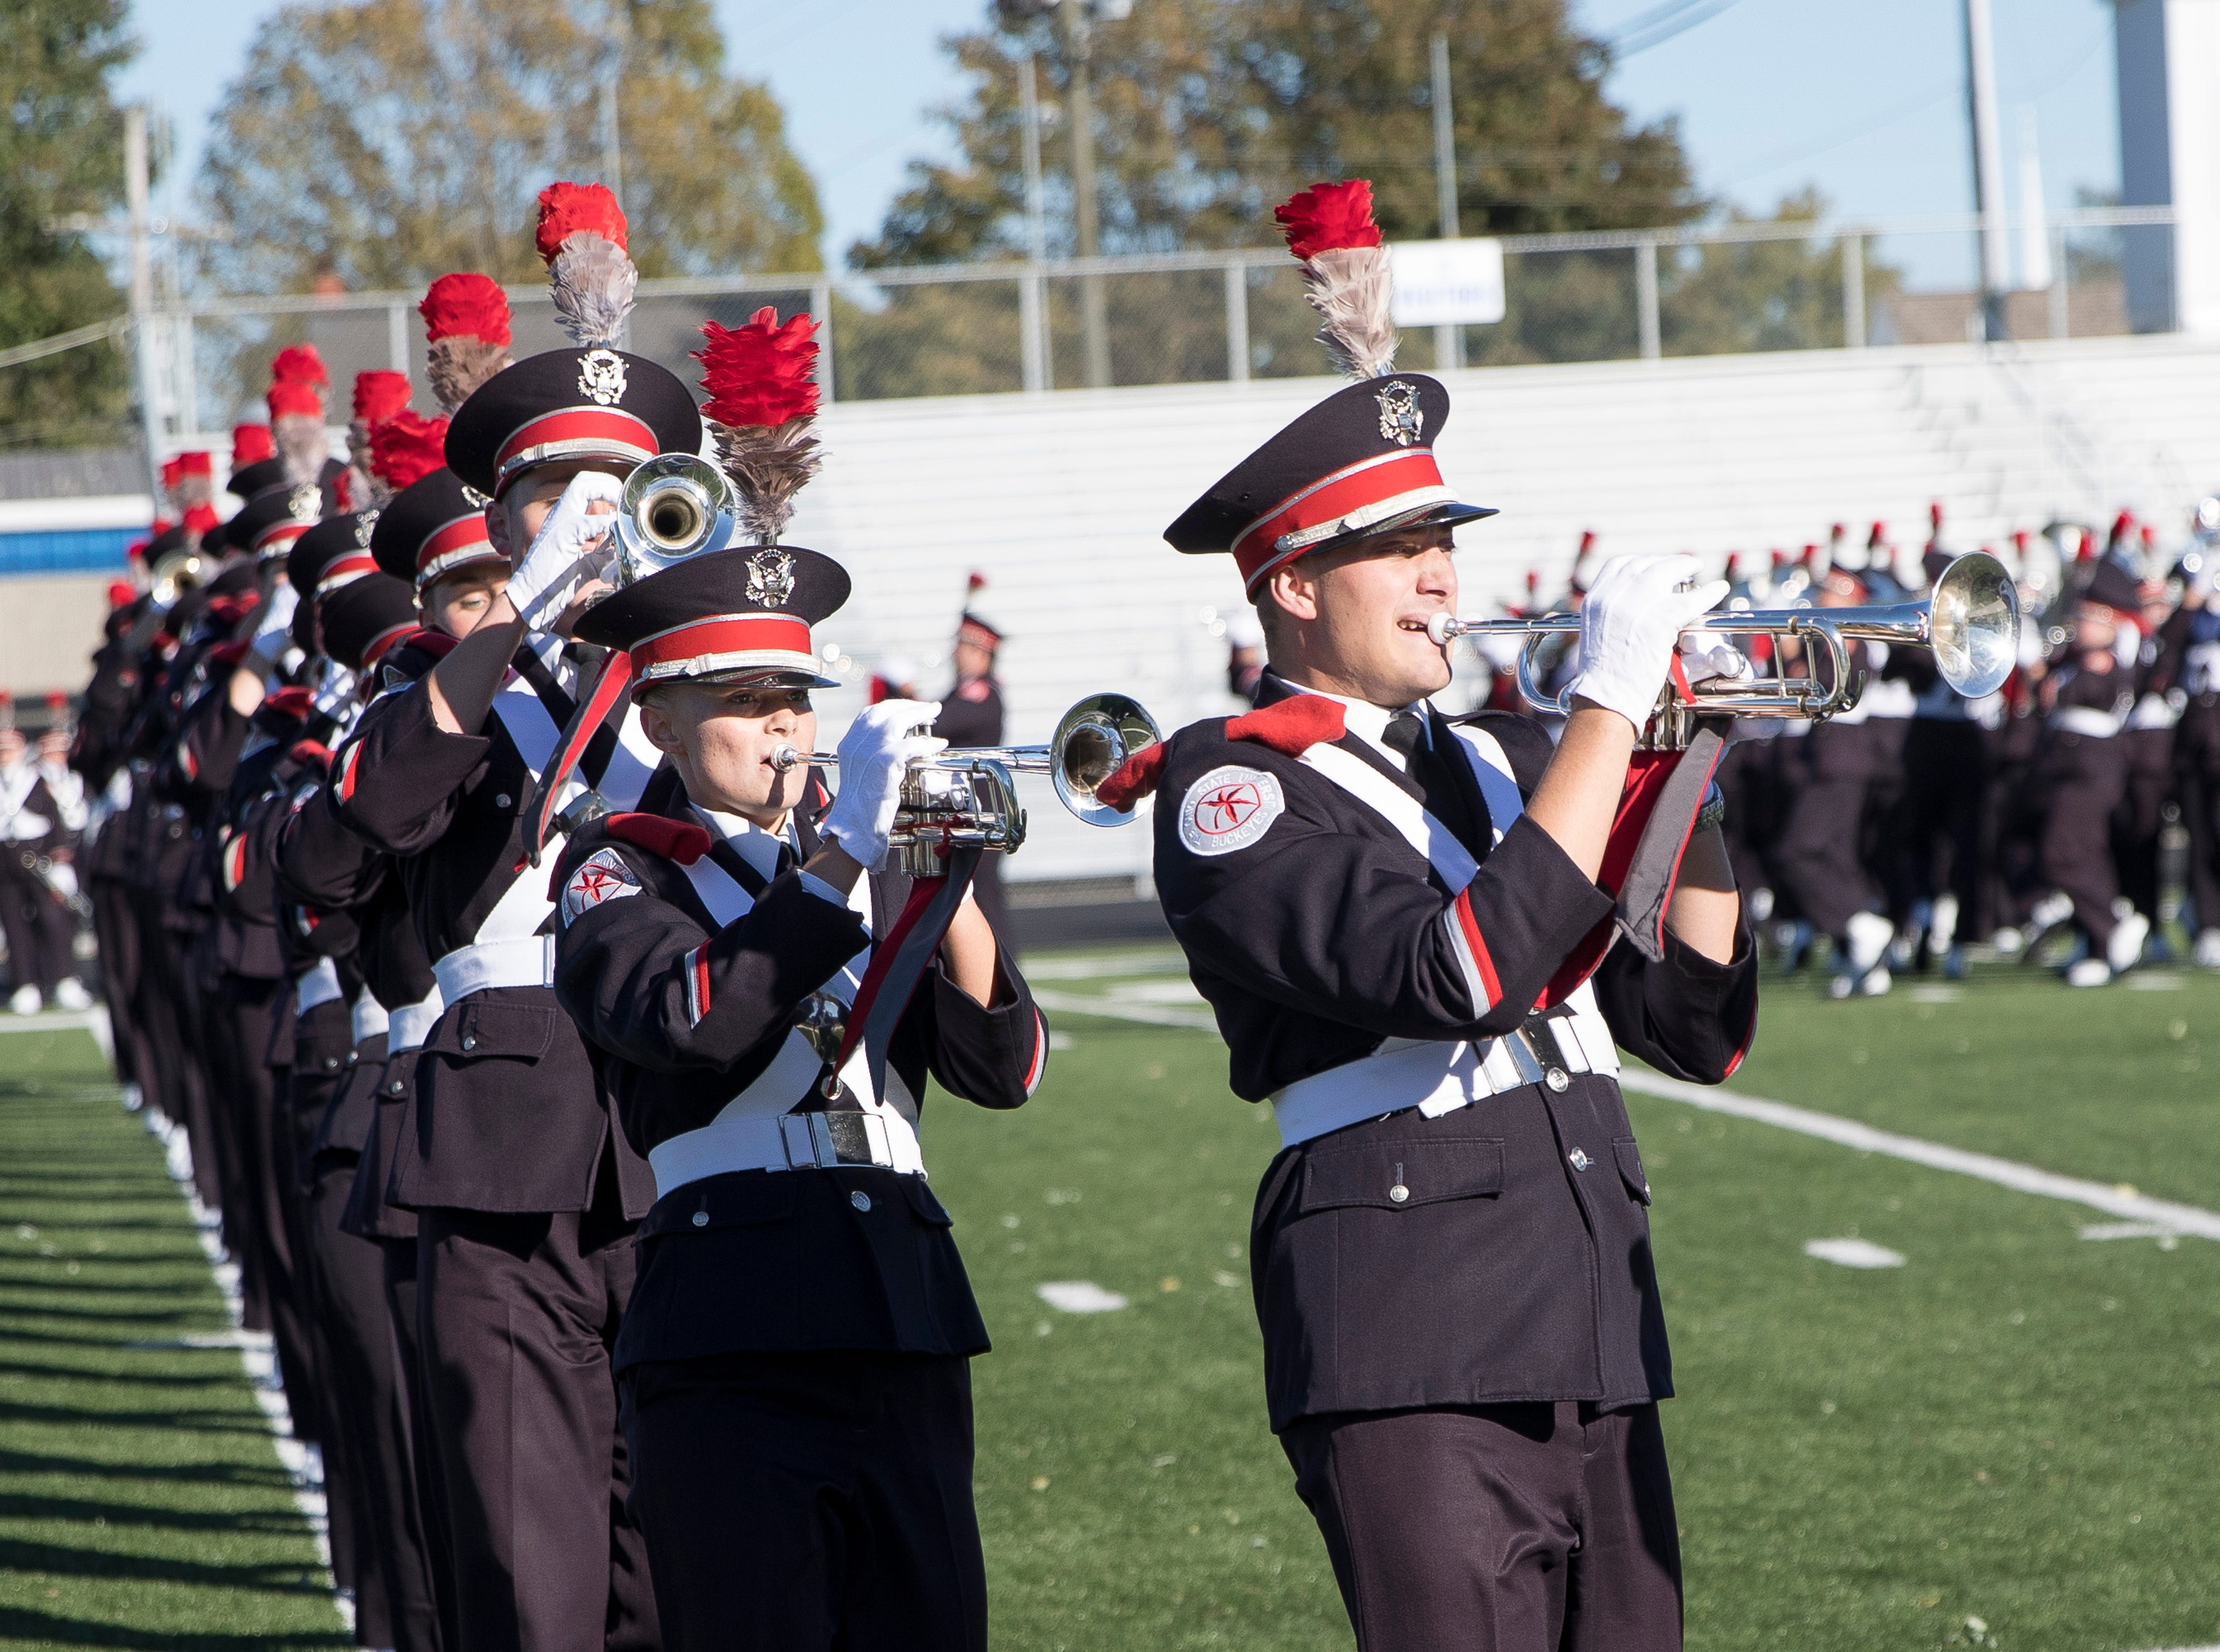 THE Ohio State University Band, also known as The Best Damn Band in the Land, performed to a packed crowd at Chillicothe's Herrnstein Field on Sunday, October 21, 2018. The event was hosted by Adena Mansion and Gardens and all proceeds from the event will go towards their educational programming.